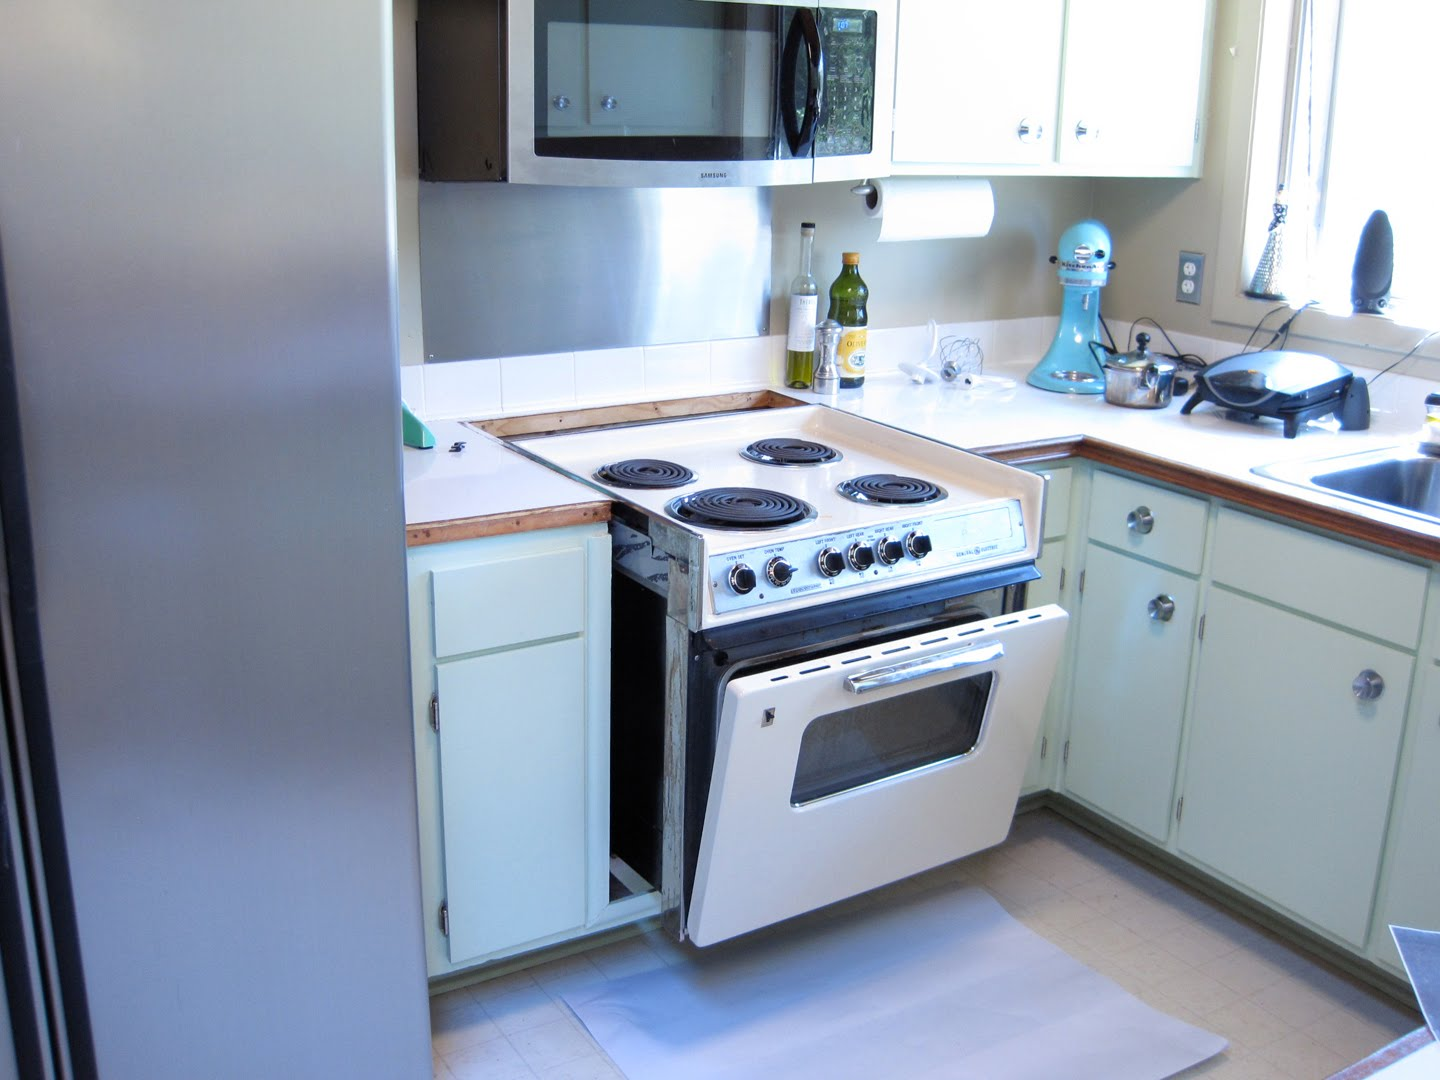 Kitchen refresh part 3 : The exciting part